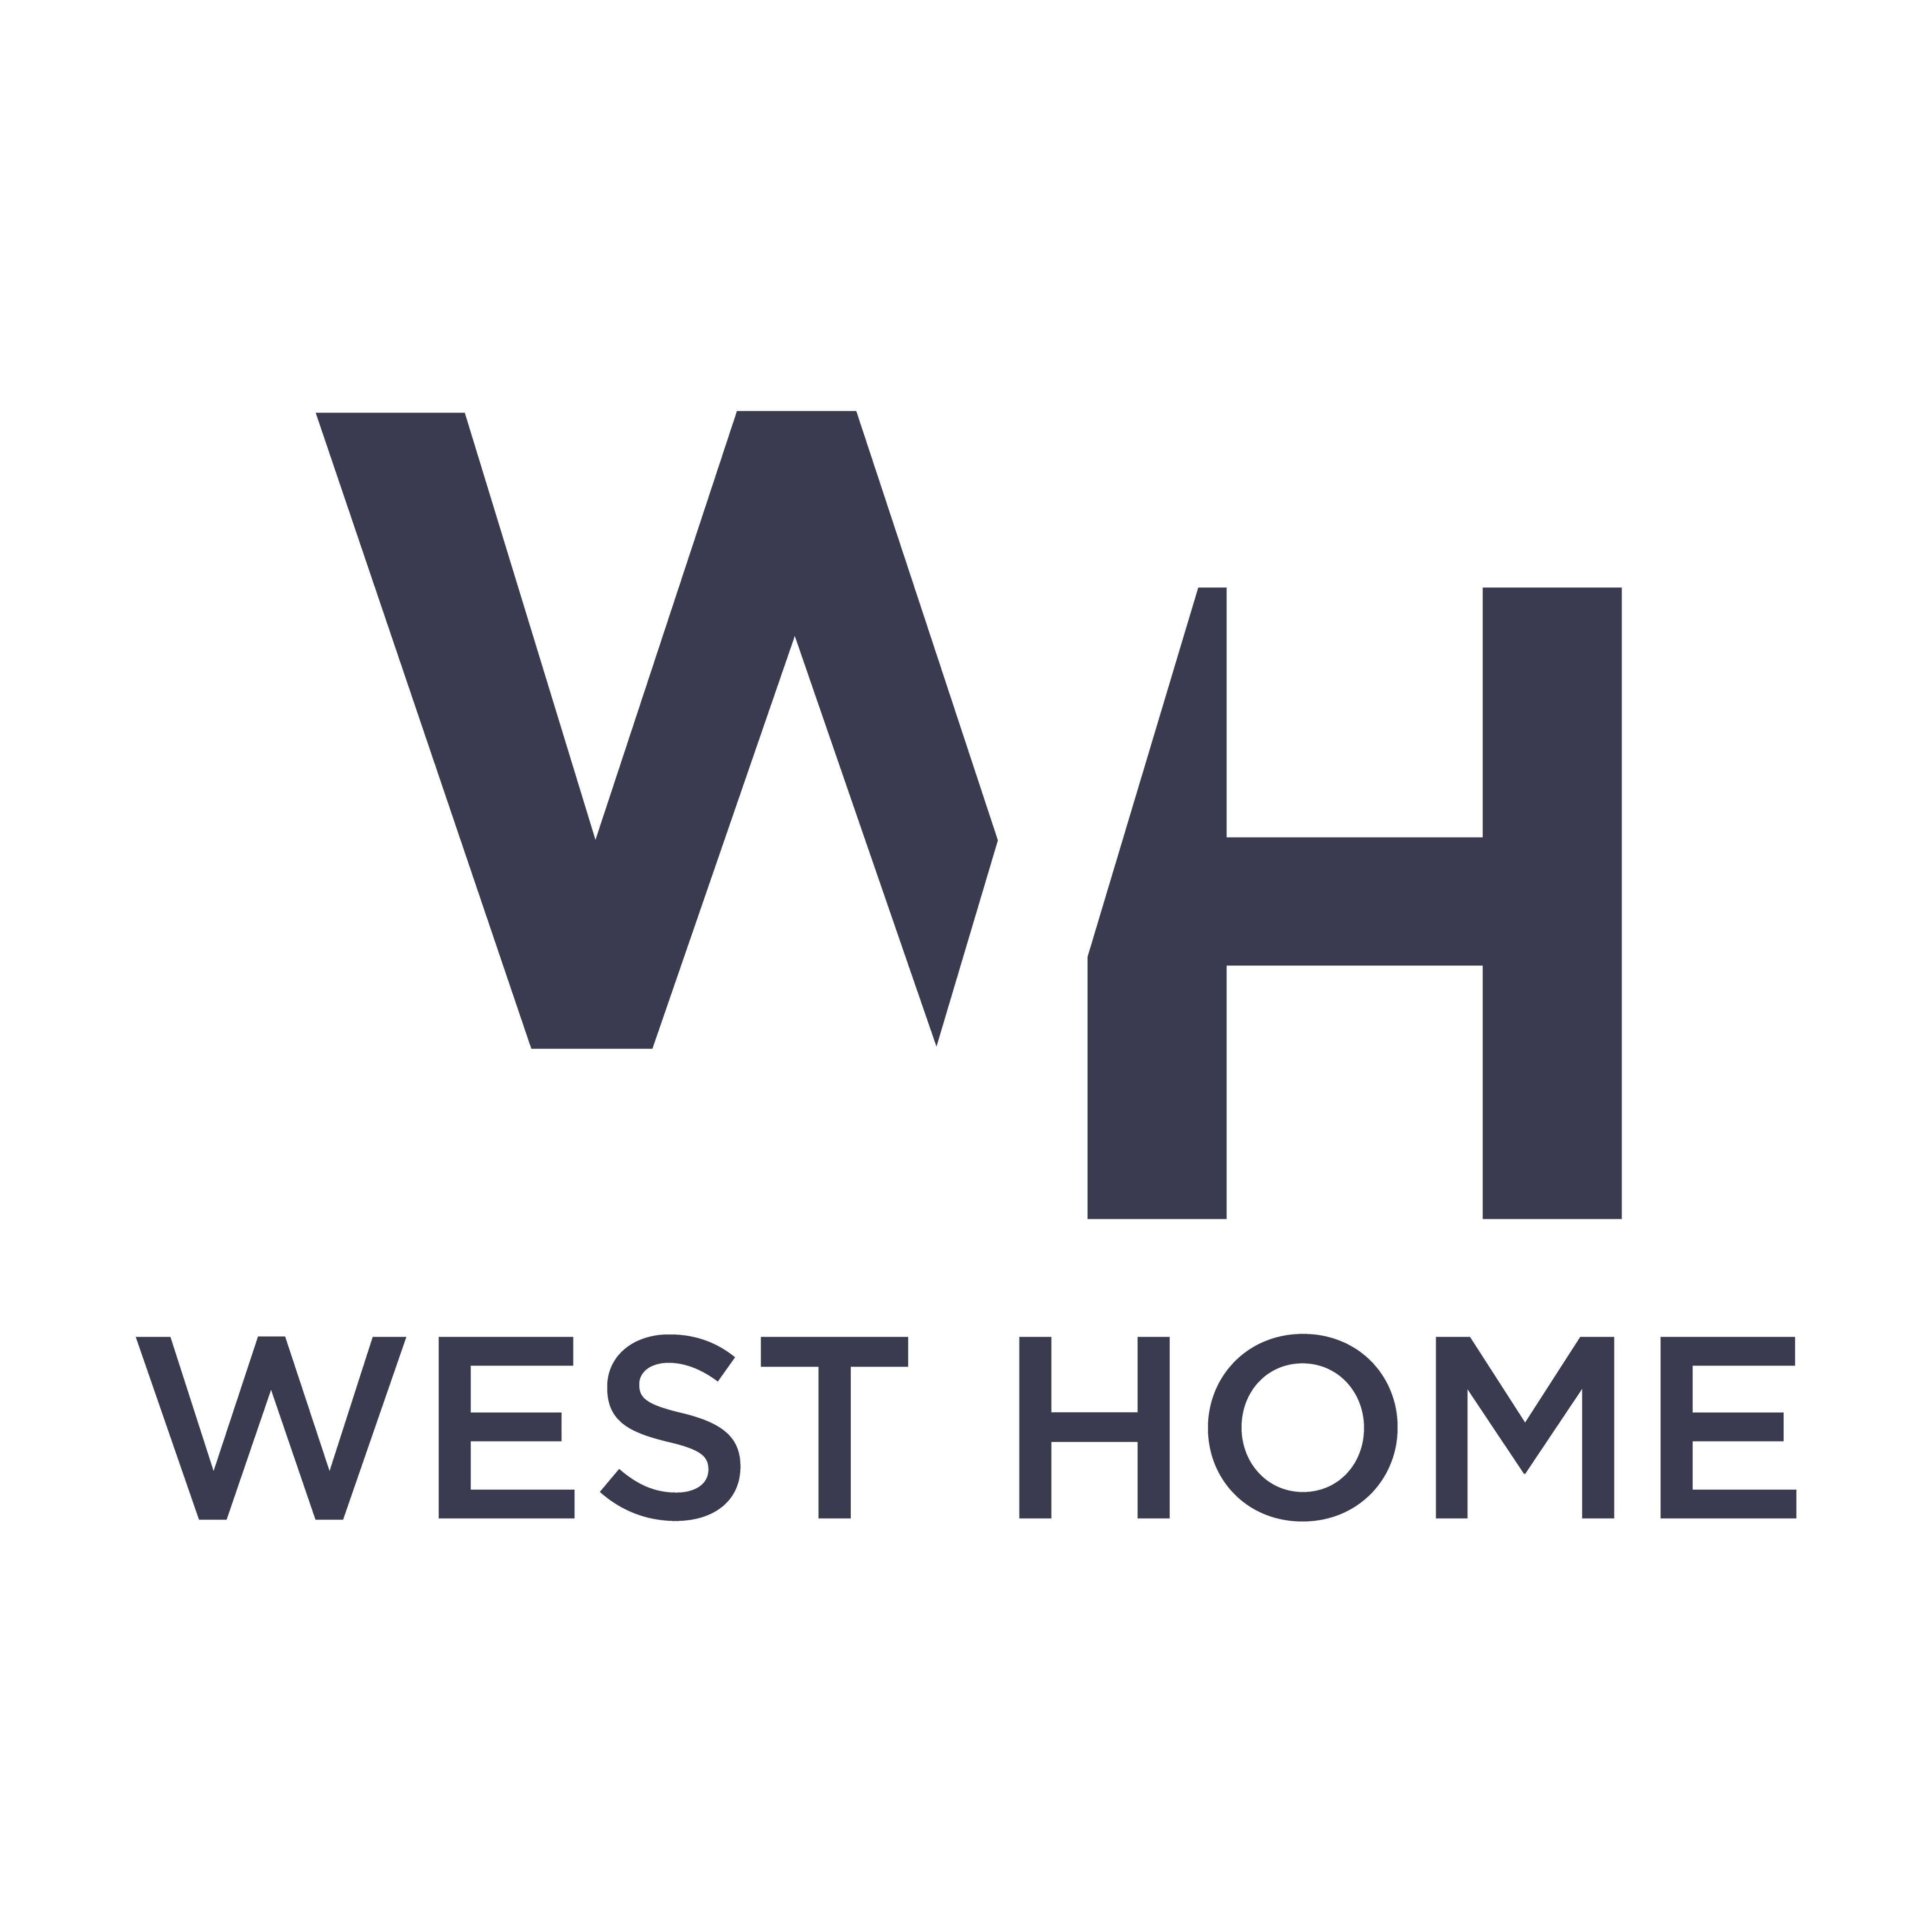 West Home Business Apartments